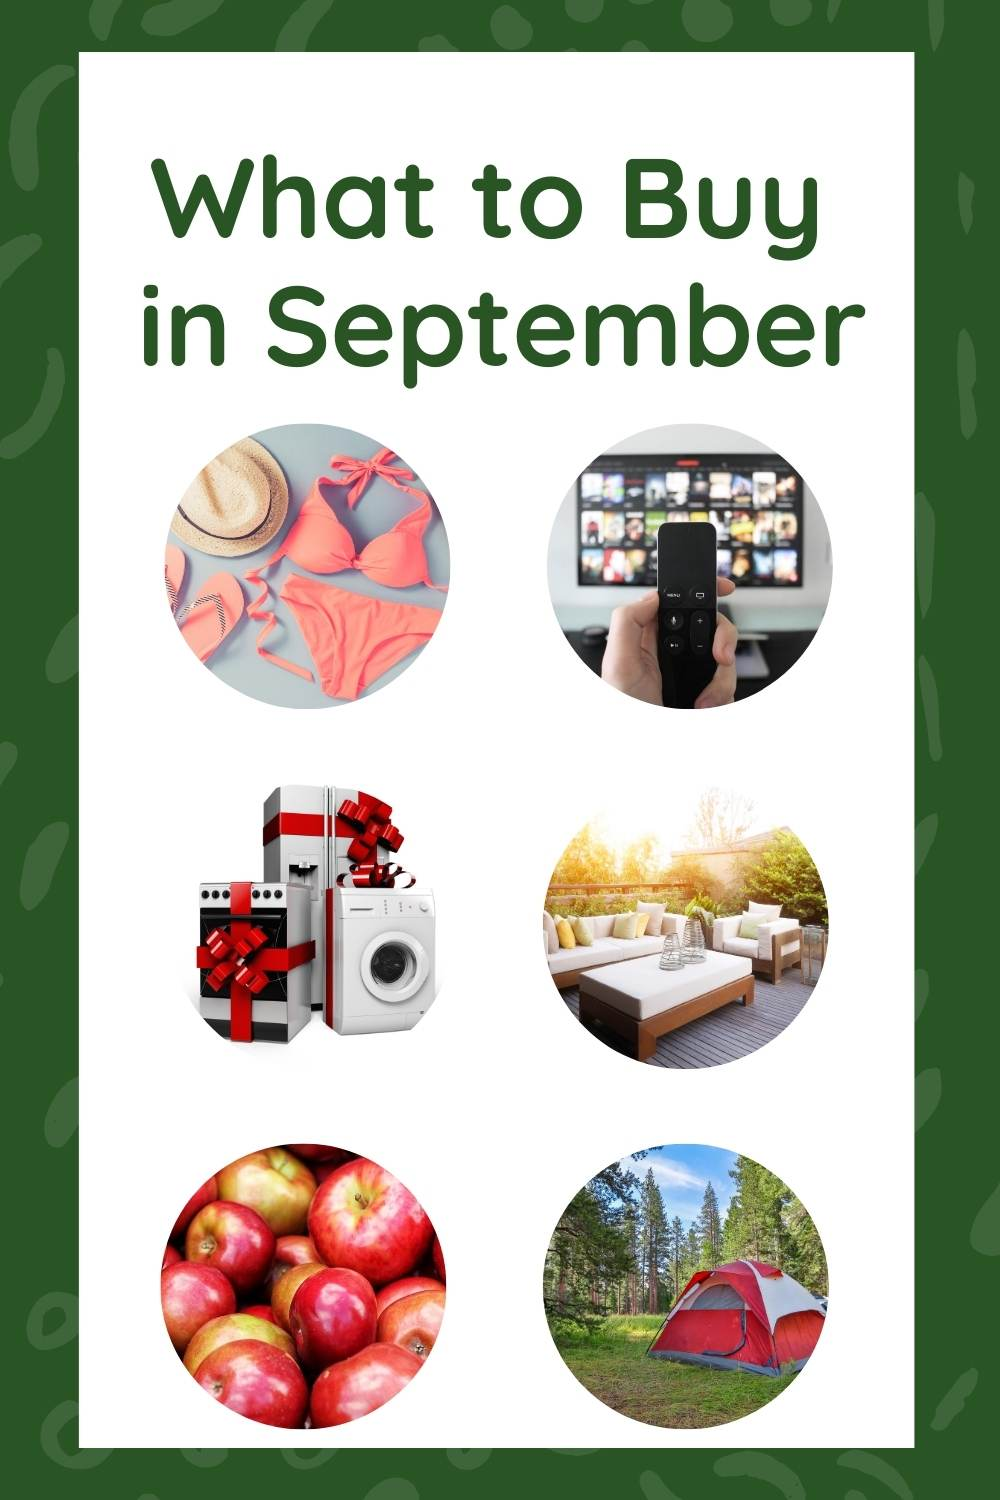 Make the most of your budget by buying what's in season and on sale. Here's a list of what to buy in September to stretch your dollars the farthest!